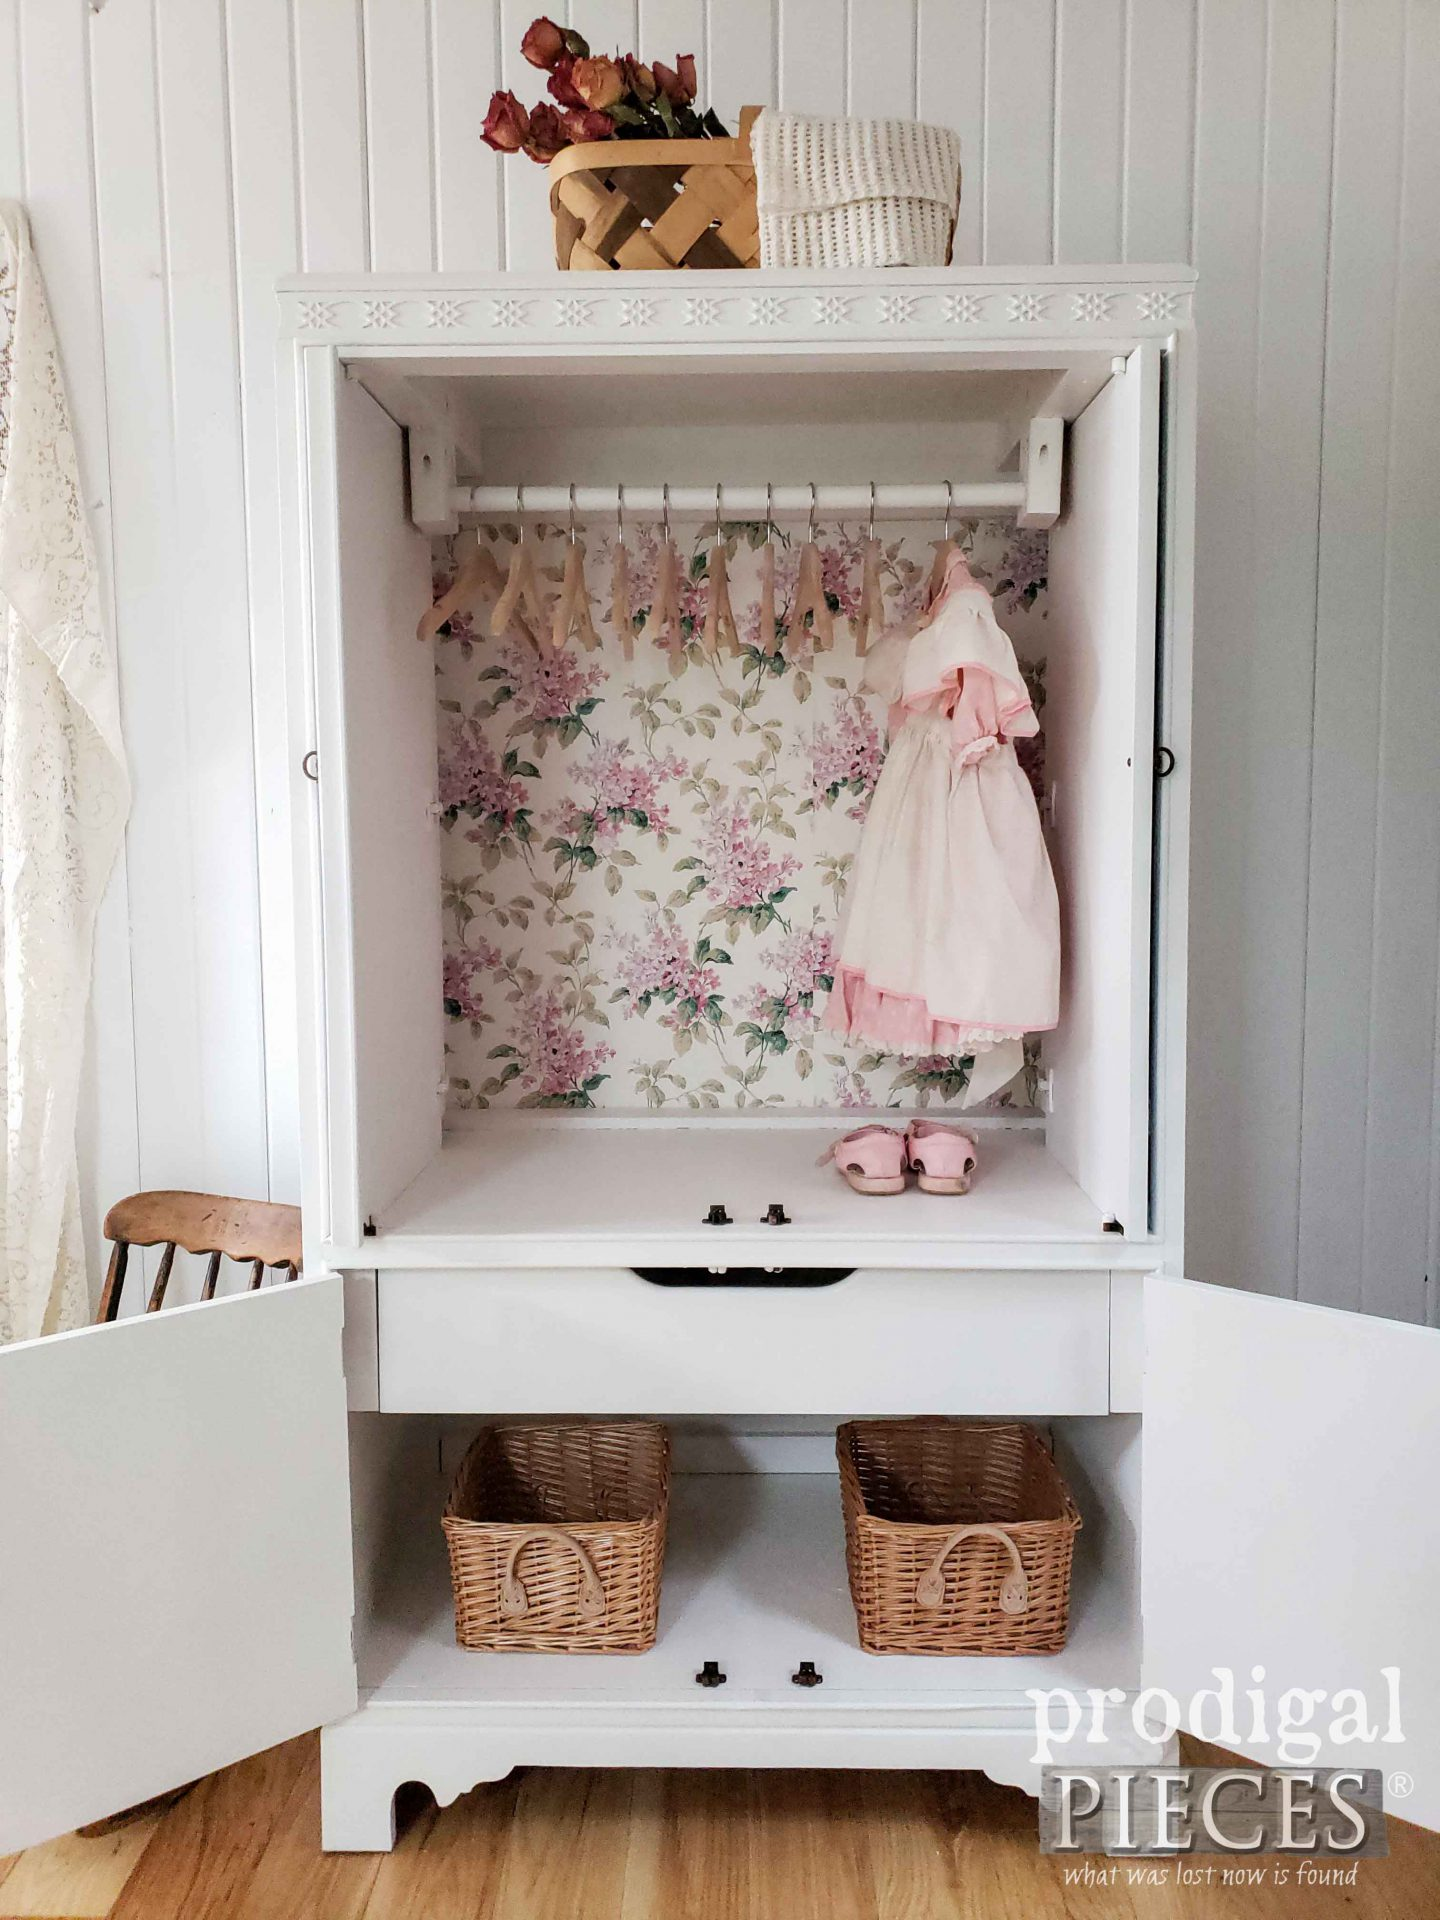 Adorable Upcycled Entertainment Center turned into Wardrobe for Baby by Larissa of Prodigal Pieces | prodigalpieces.com #prodigalpieces #diy #baby #nursery #furniture #homedecor #diy